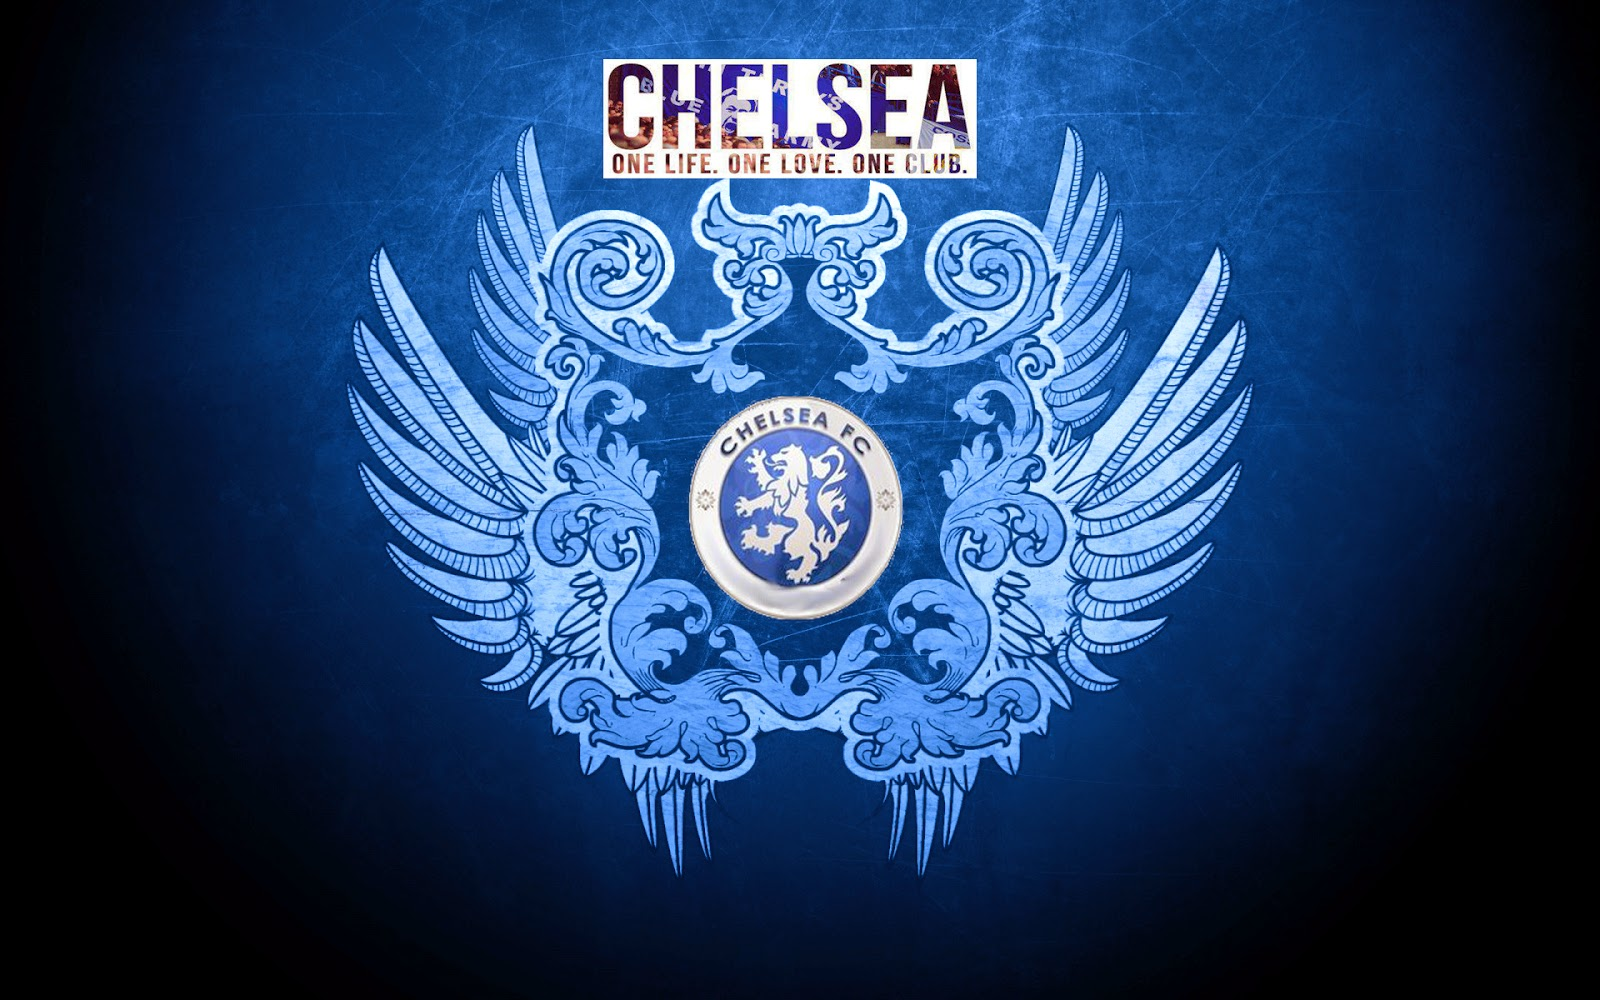 IDN FOOTBALLCLUB WALLPAPER: Chelsea Football Club Wallpaper